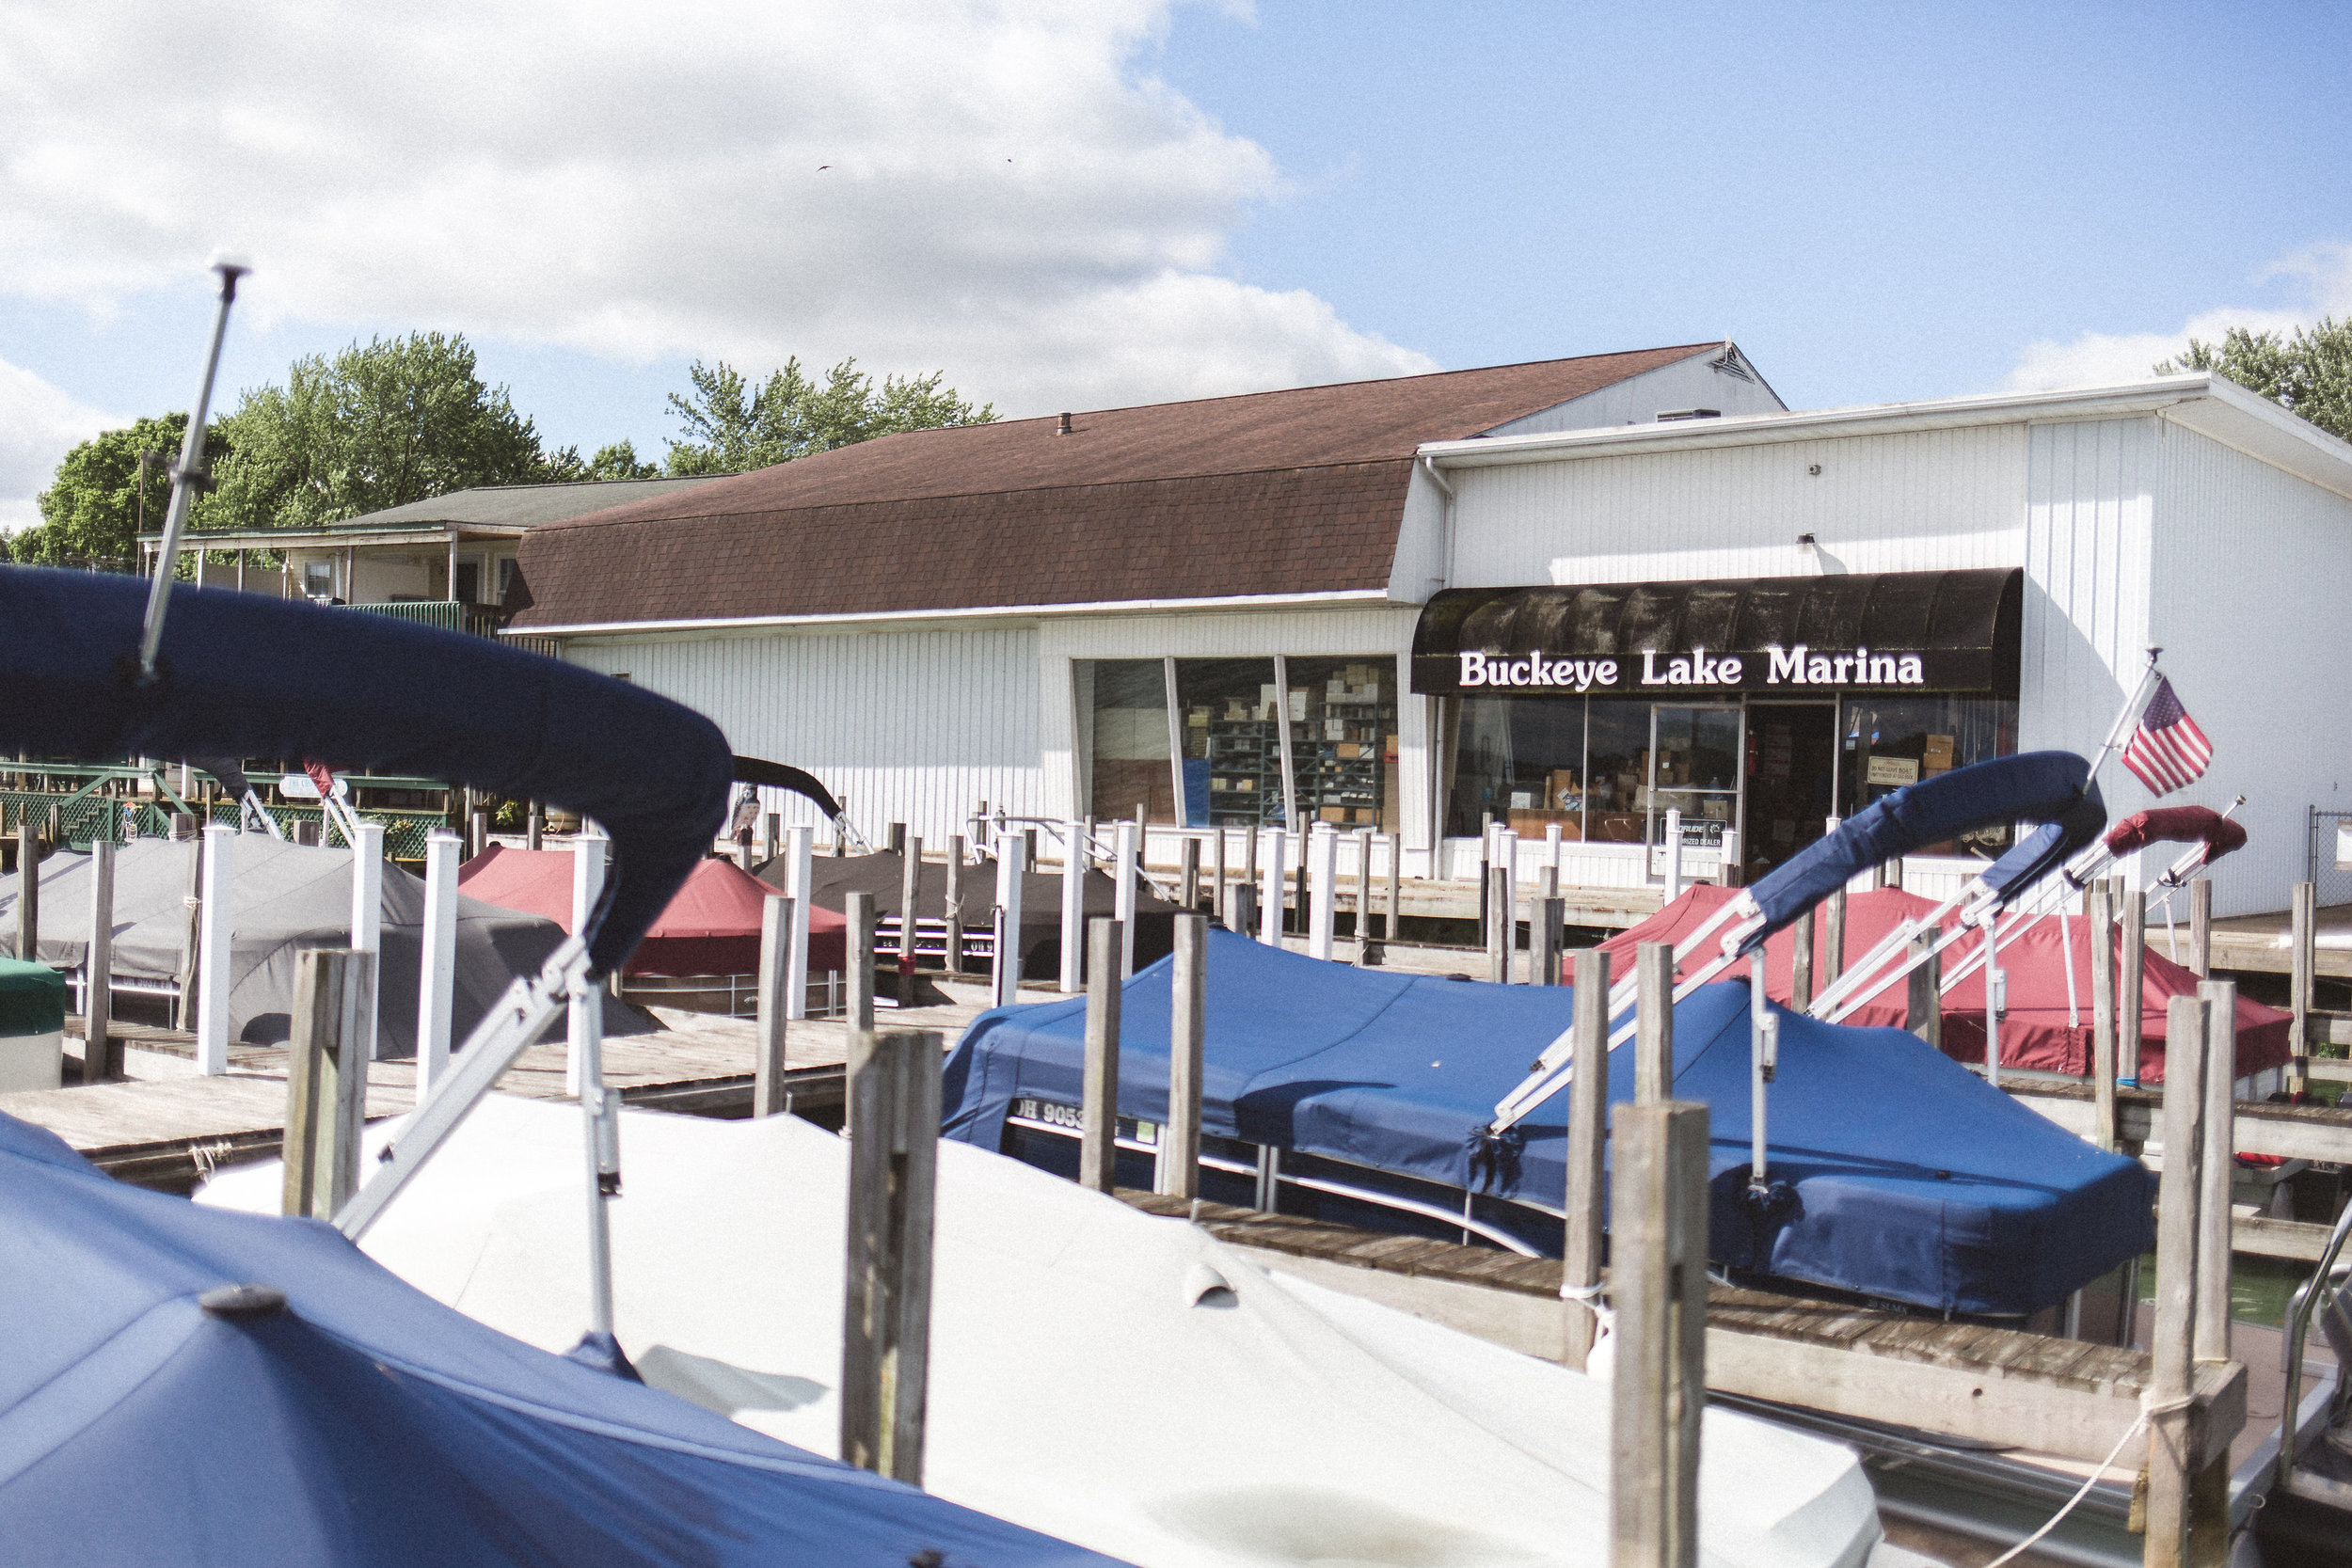 An amazing selection of boats and on-the-water needs awaits you at Buckeye Lake Marina.